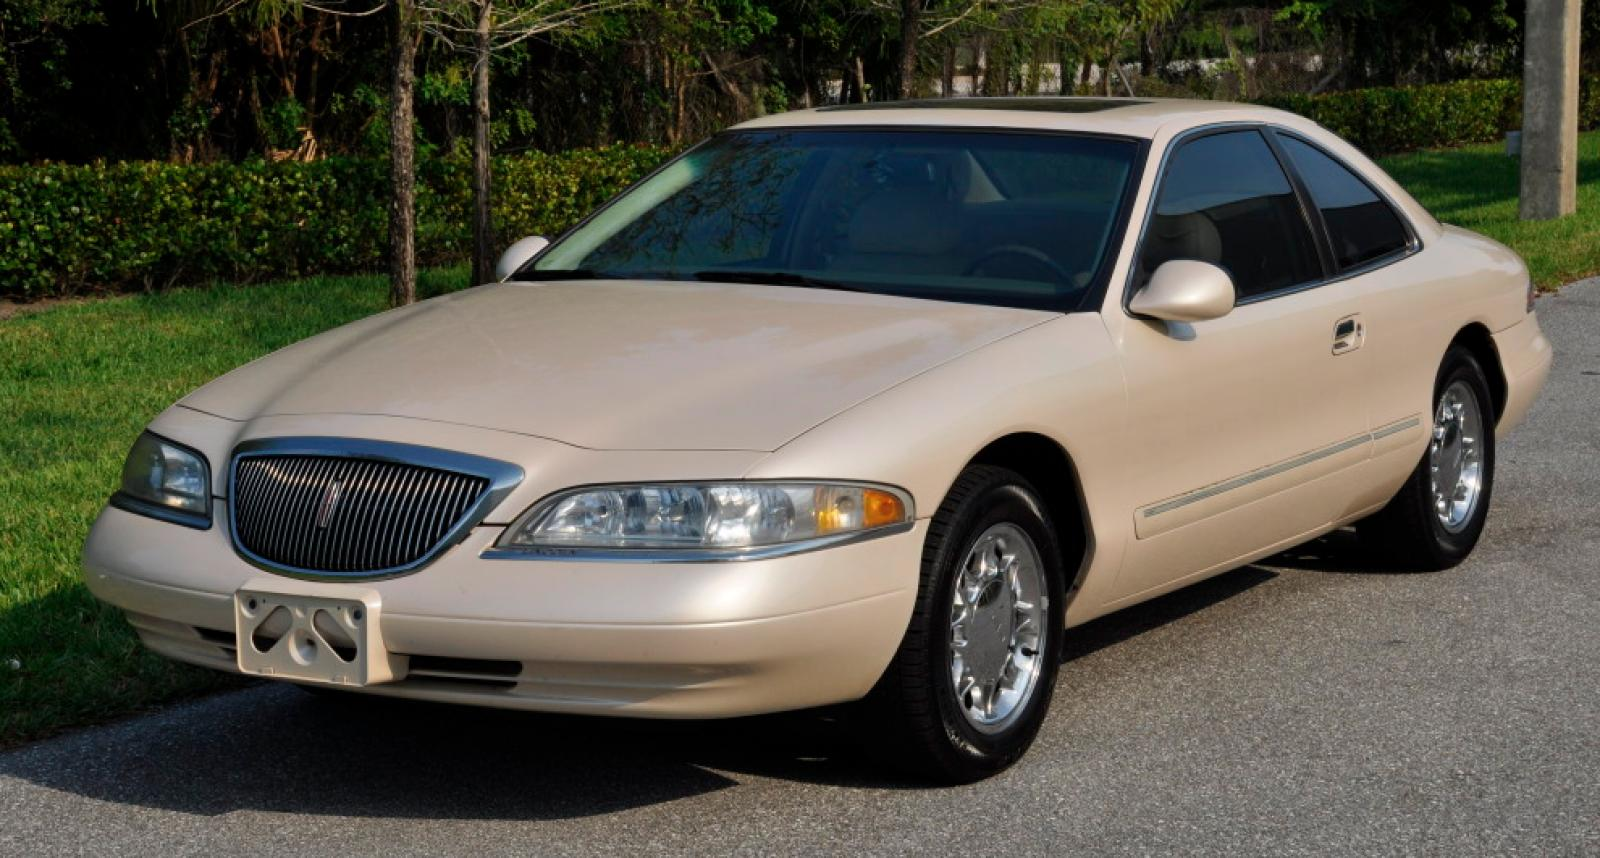 1997 Lincoln Mark Viii Information And Photos Zombiedrive